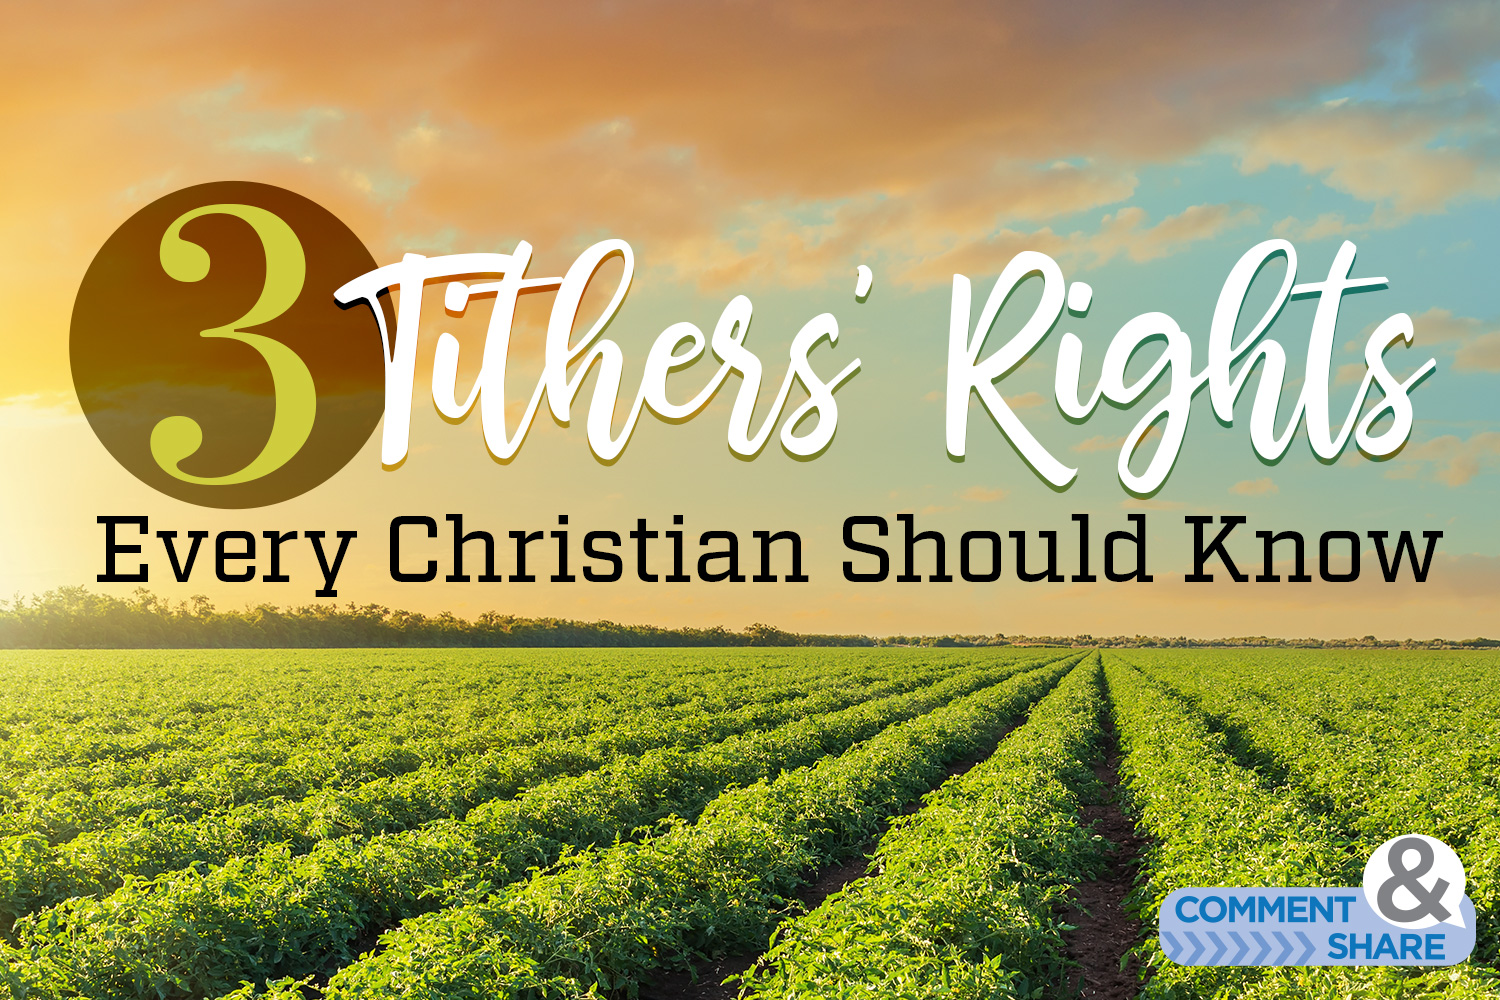 3 Tithers' Rights Every Christian Should Know